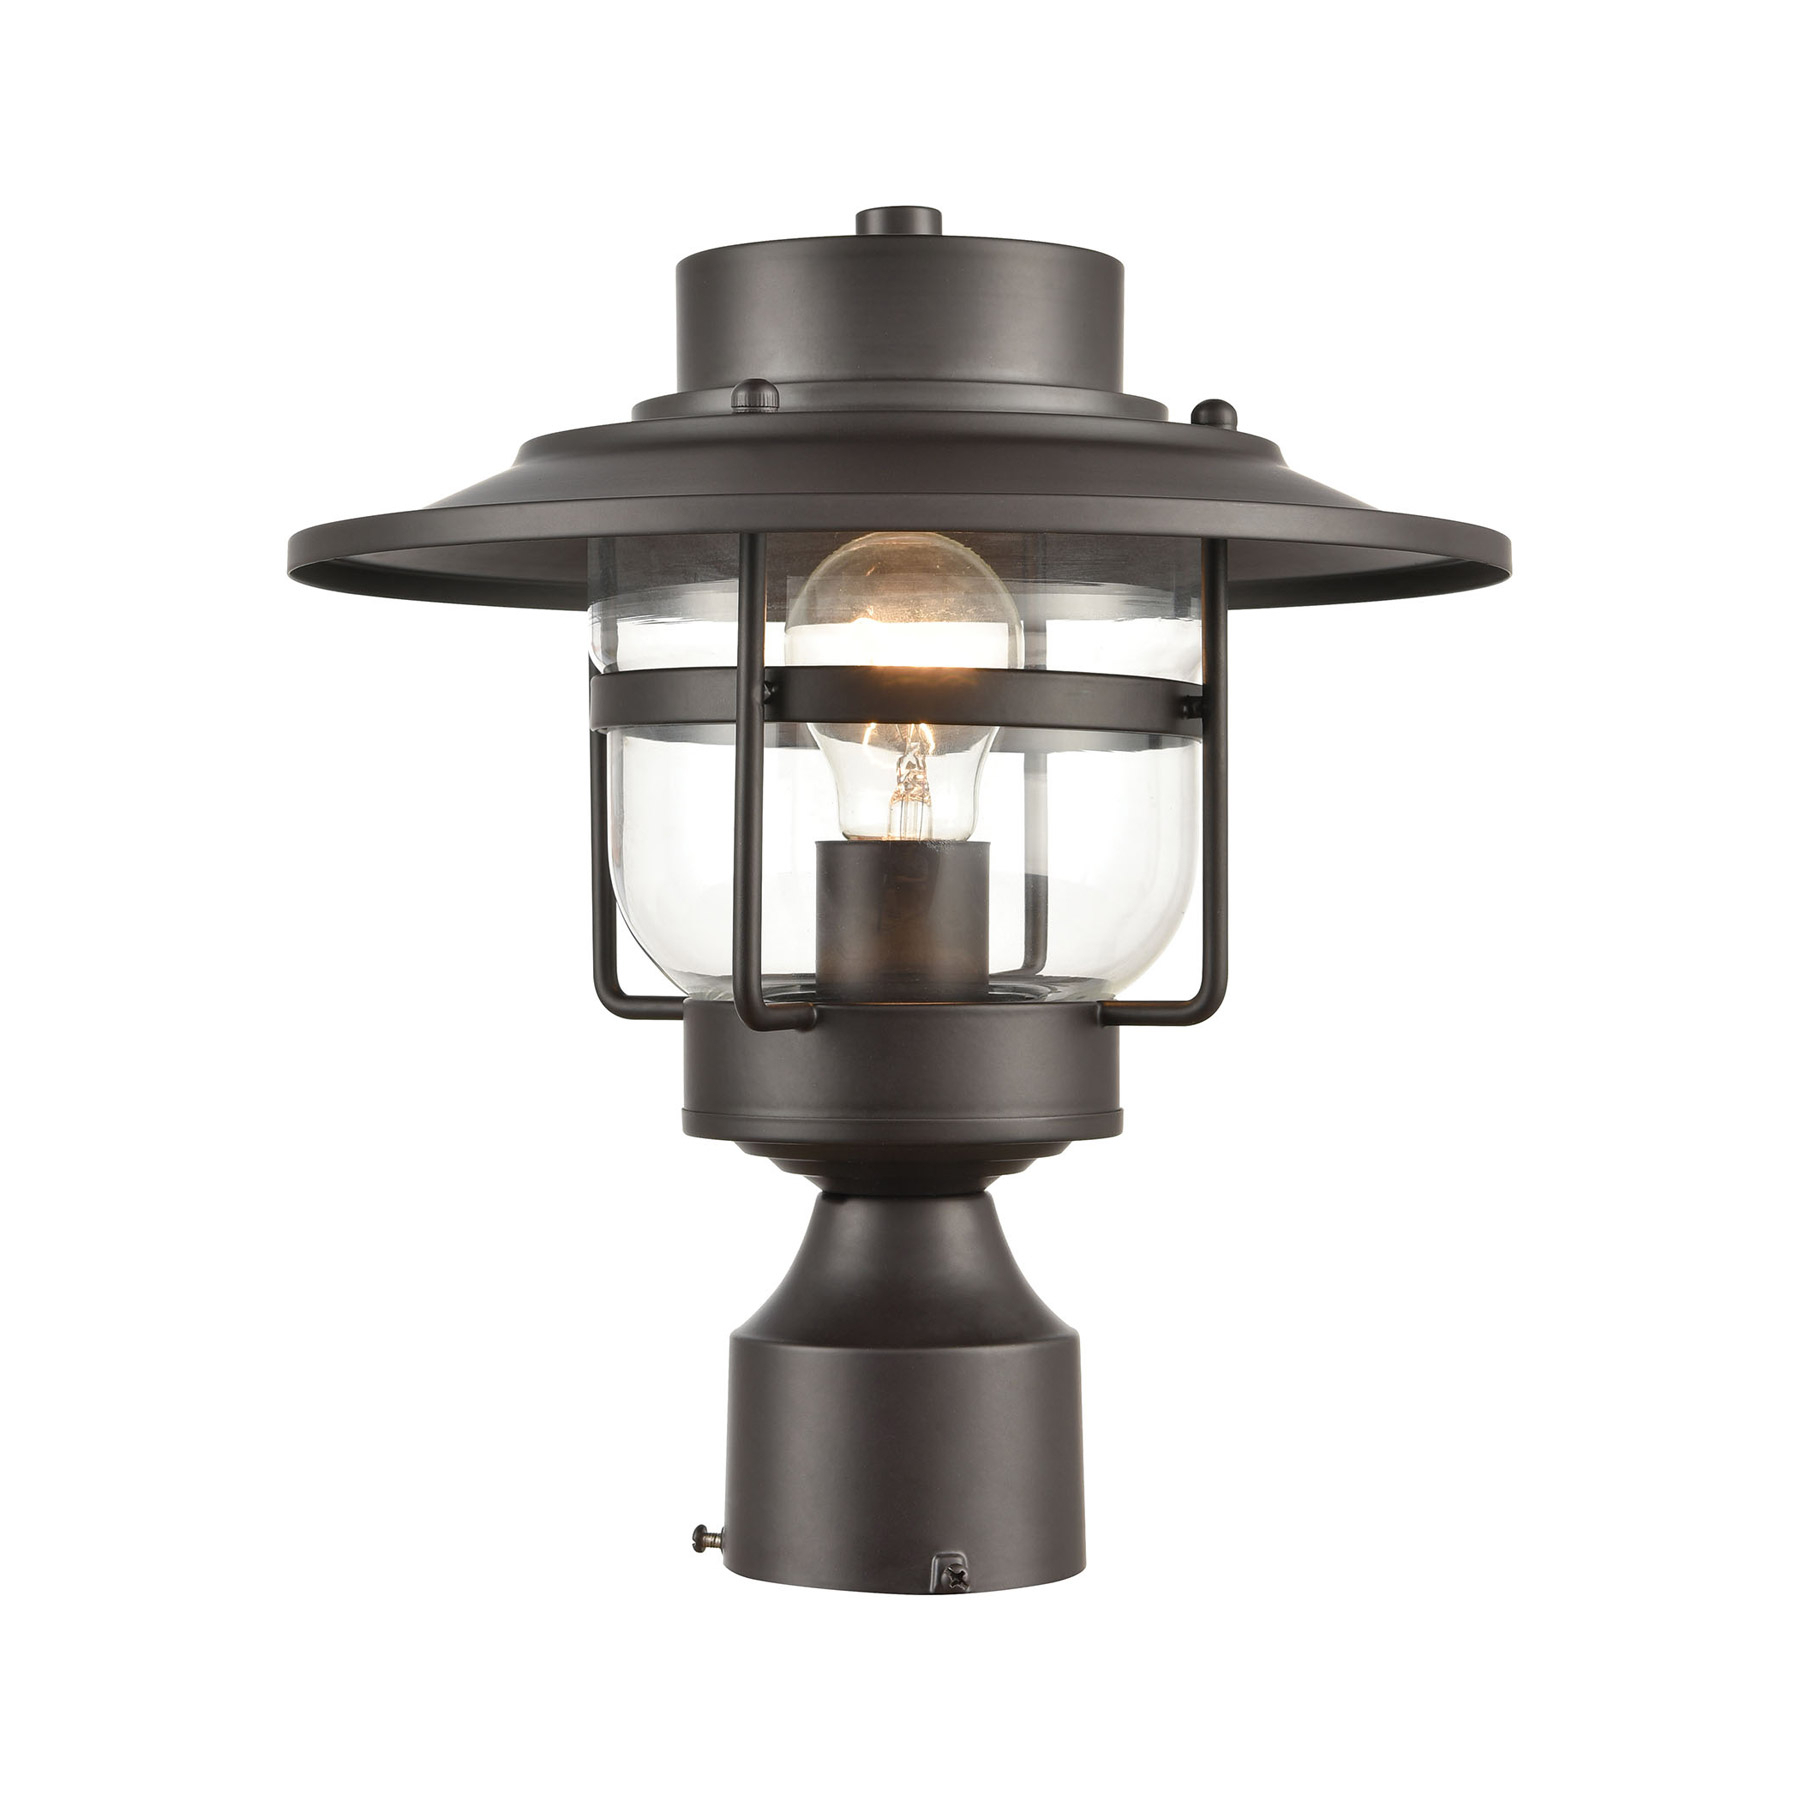 Verne Oil Rubbed Bronze Beveled Glass Outdoor Wall Lanterns Inside Most Current Elk Lighting 46073/1 1 Light Outdoor Post Mount In Oil (View 3 of 20)